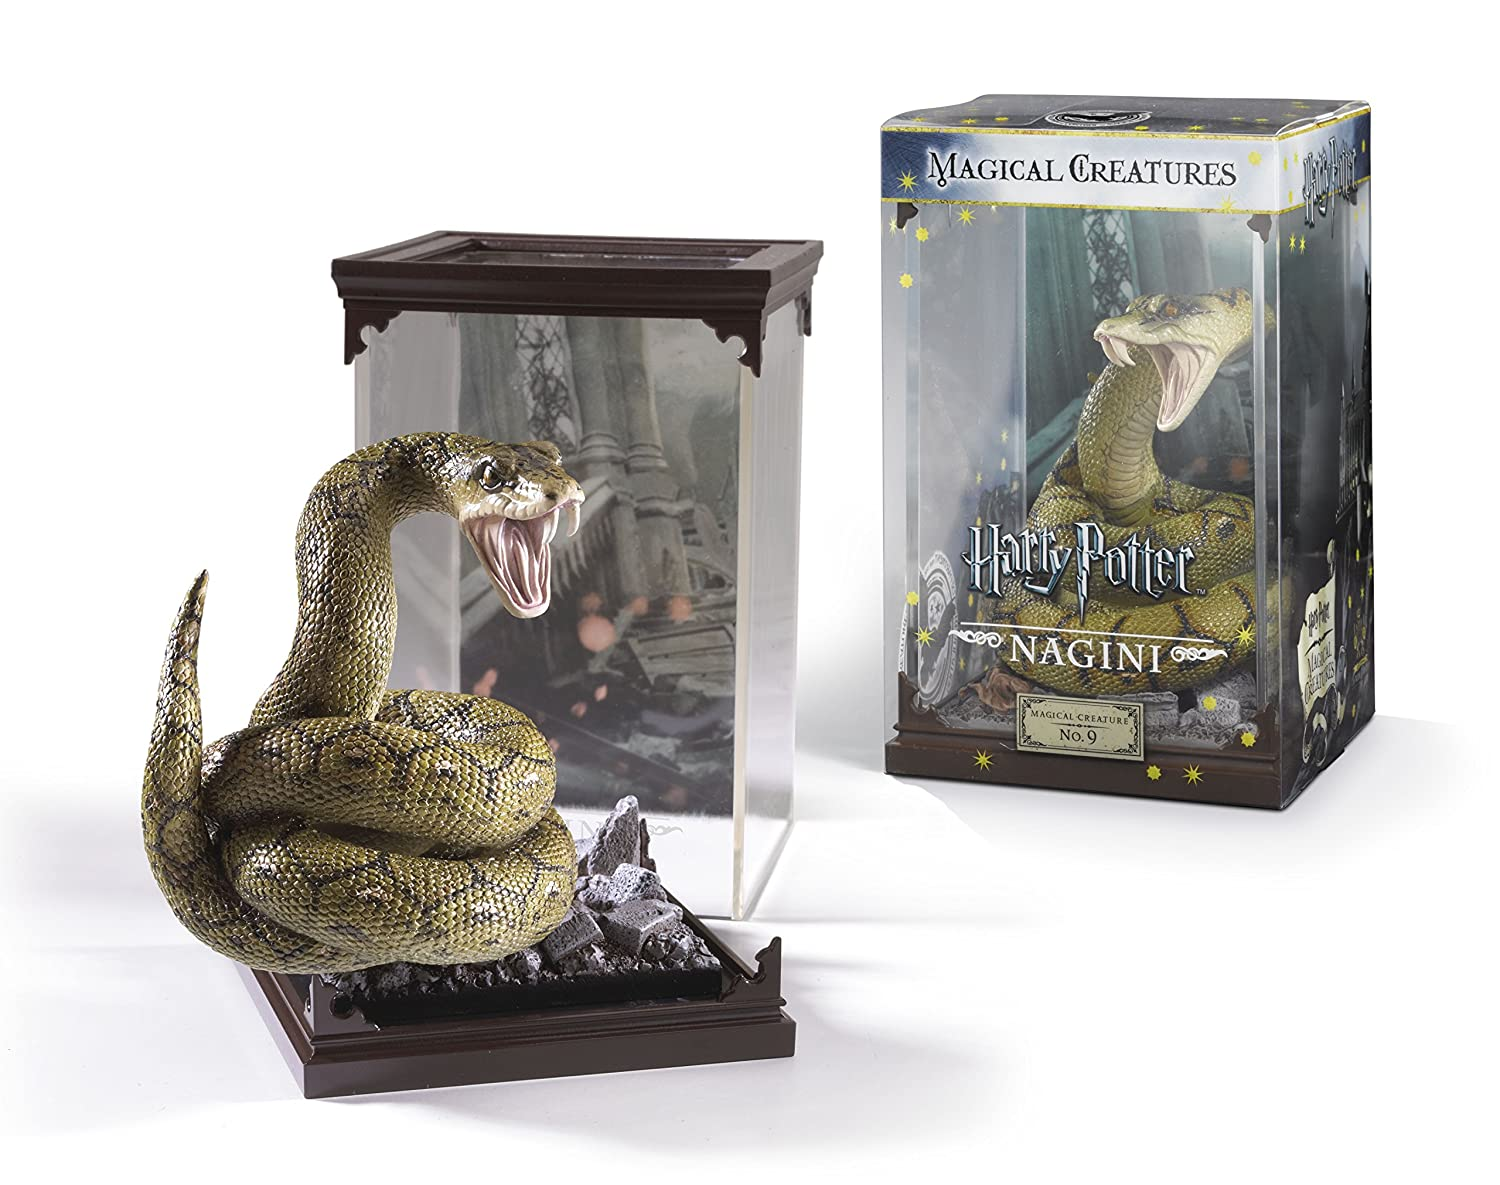 No.9 Nagini NN7544 The Noble Collection Harry Potter Magical Creatures